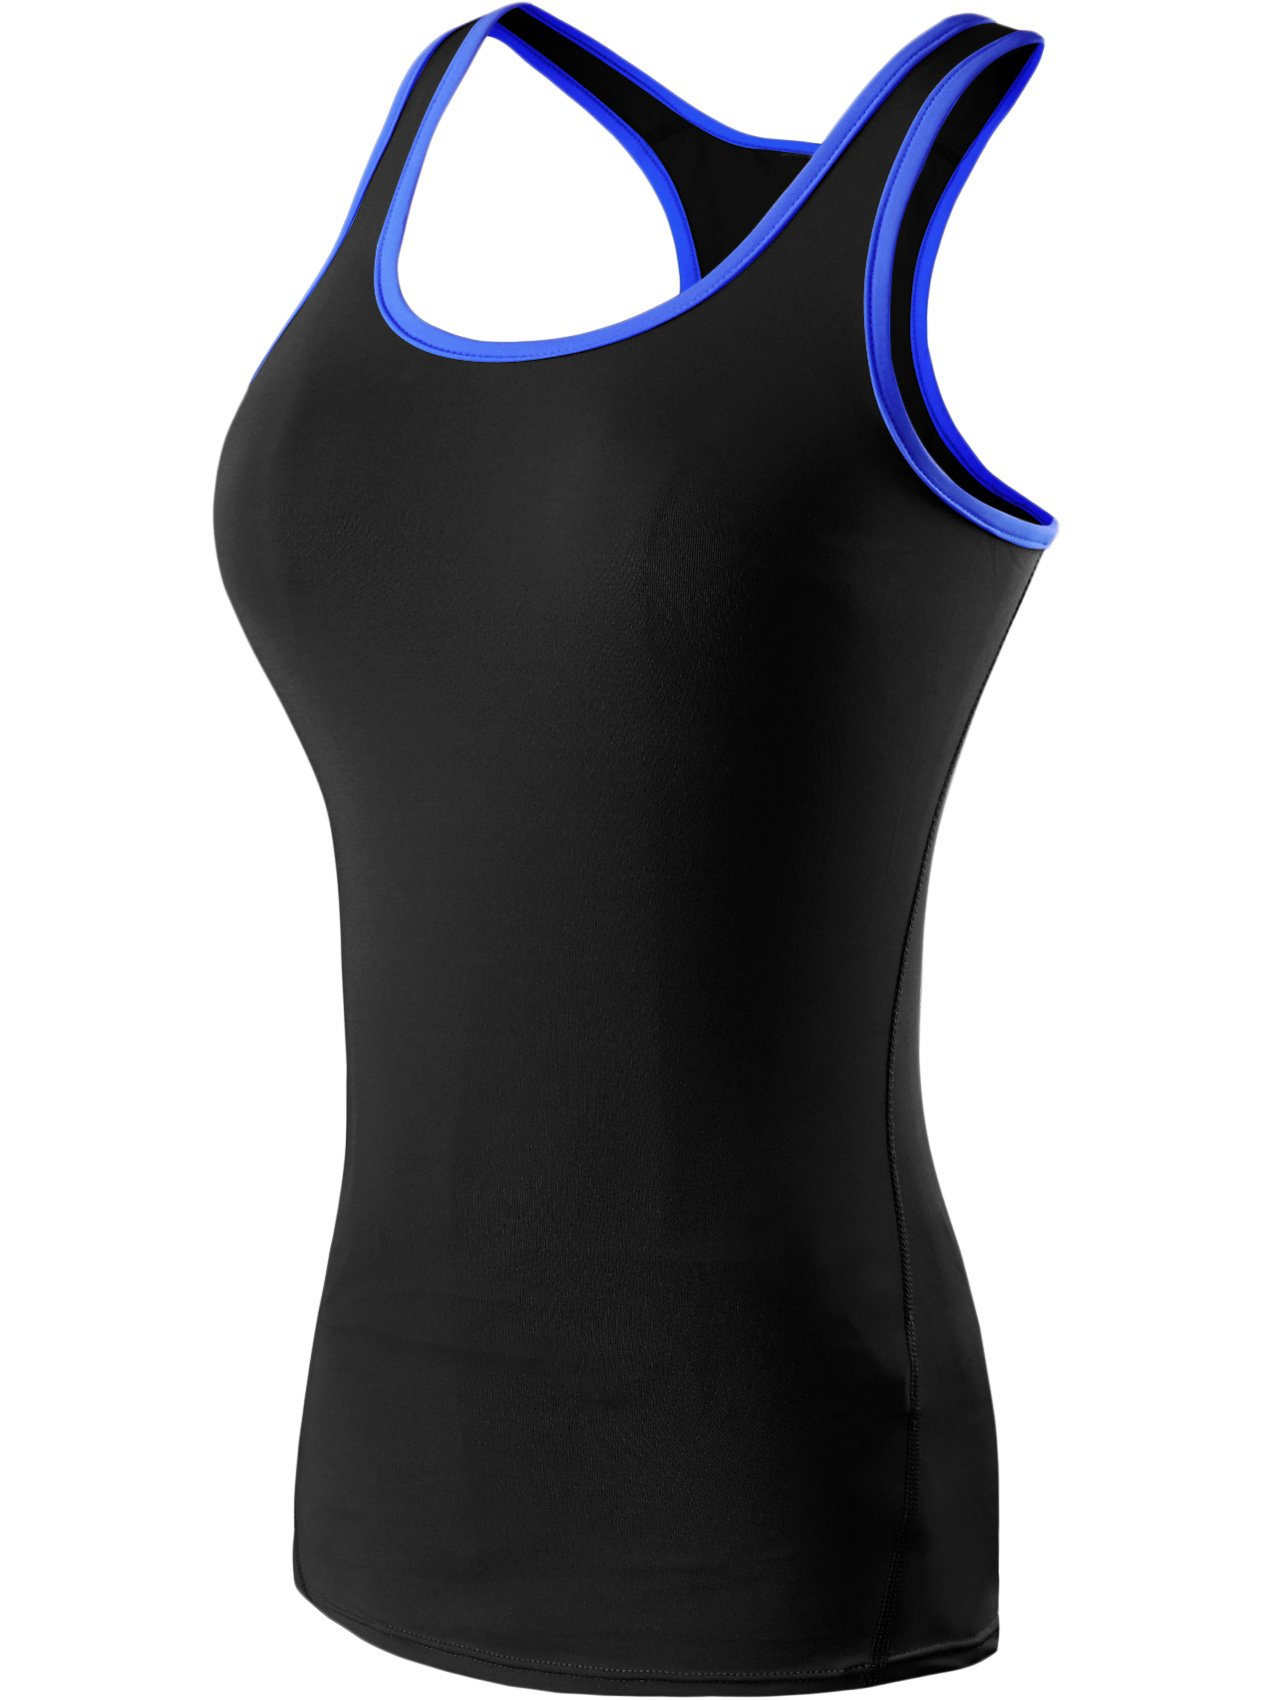 Neleus Women's 3 Pack Compression Athletic Tank Top for Yoga Running,Blue,Green,Rose,EU XL,US L